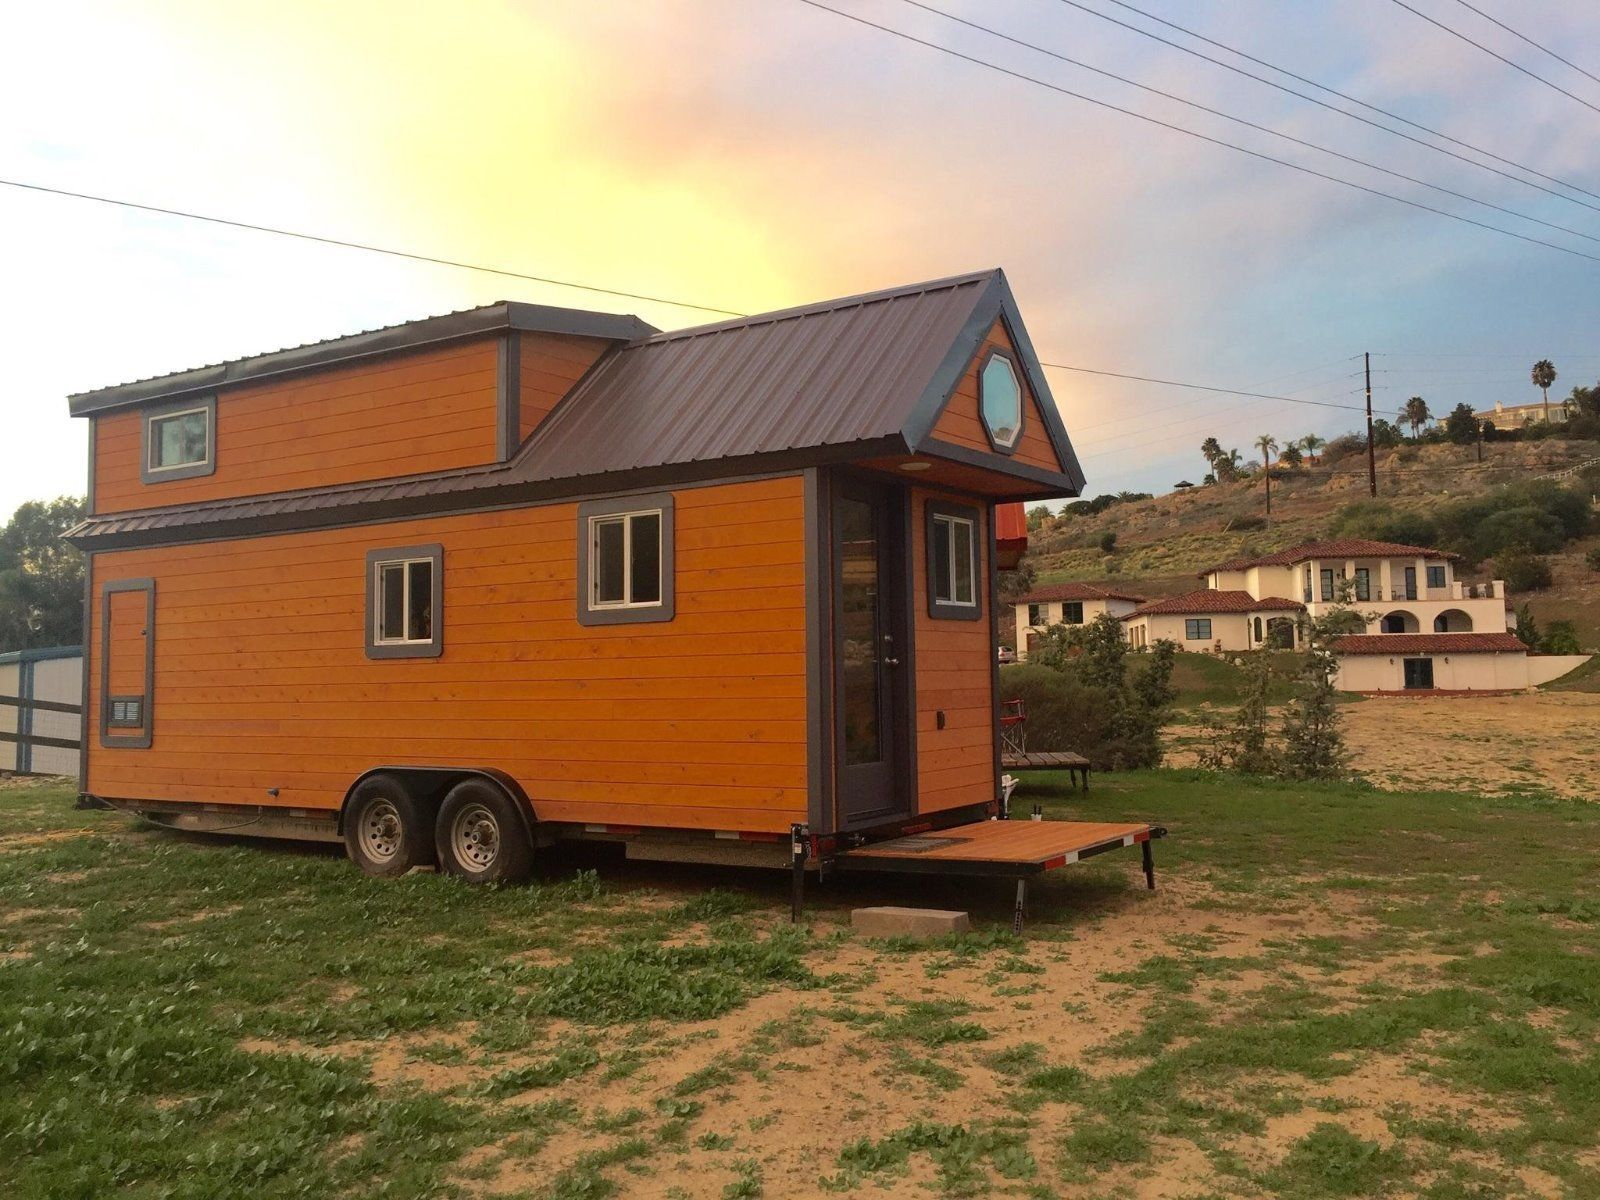 Tiny houses on wheels for sale california - This The Californian Tiny House On Wheels It S Located In Rancho Sante Fe California